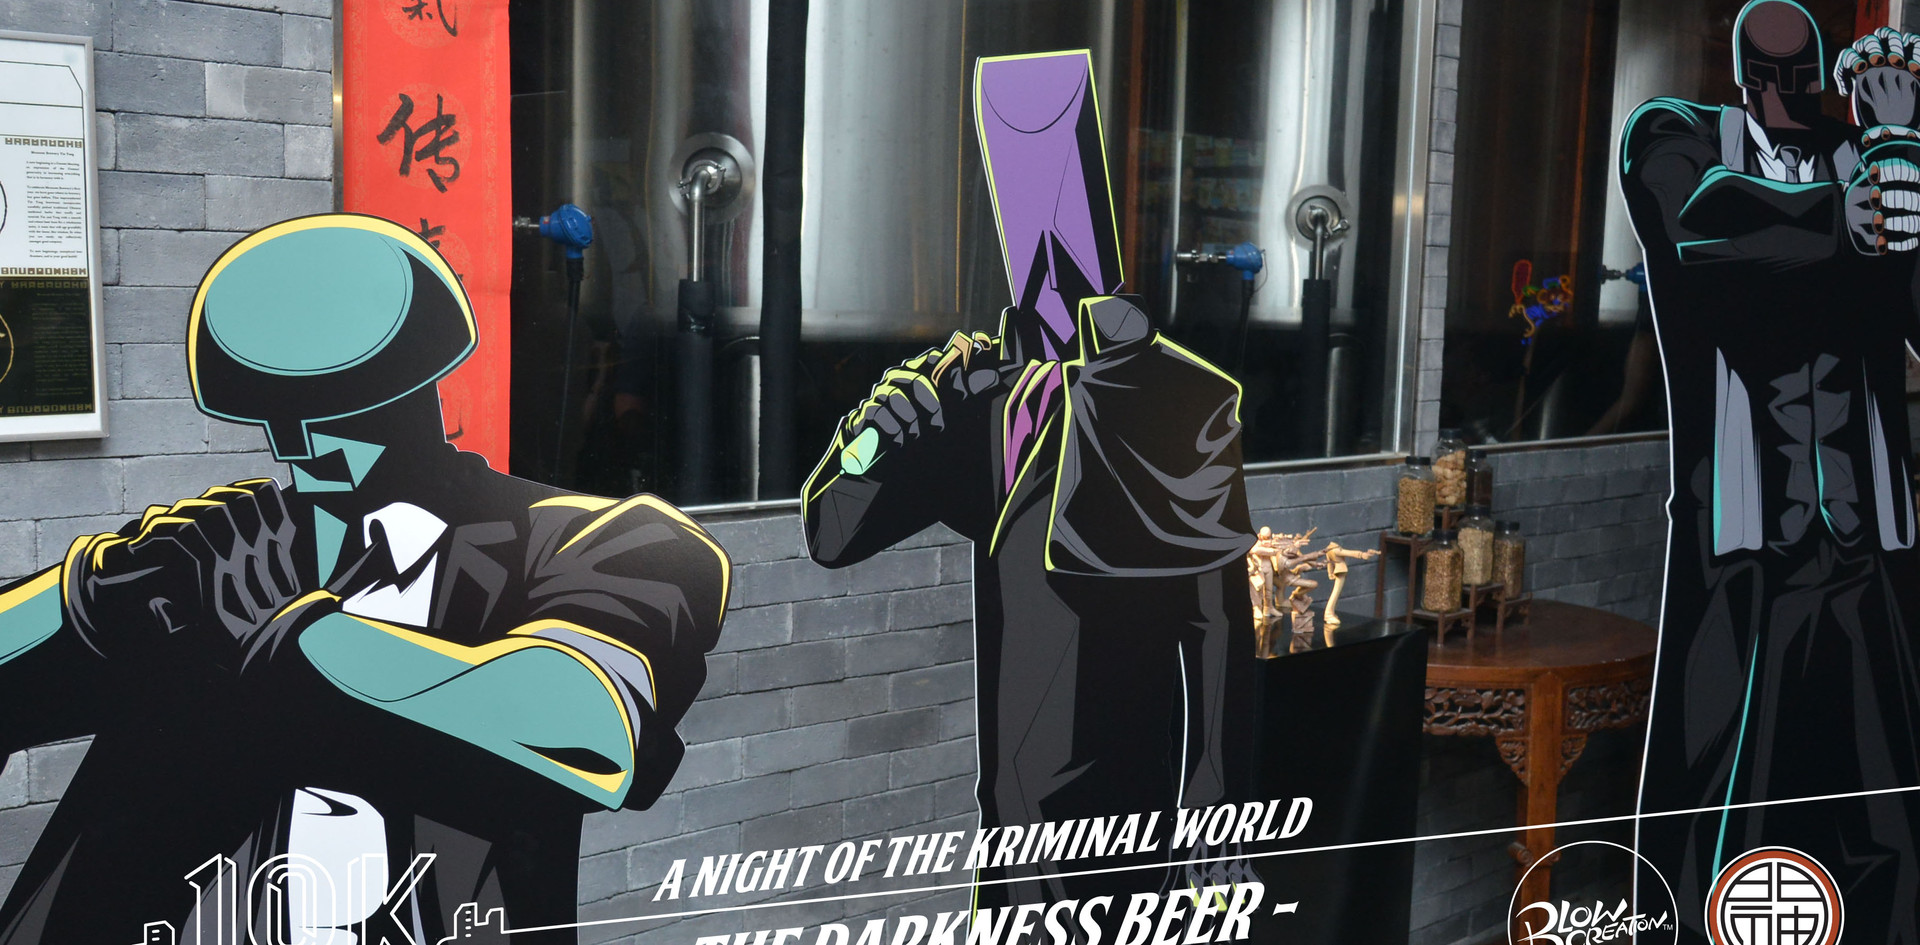 A NIGHT OF THE KRIMINAL WORLD [THE DARKNESS BEER]  ​